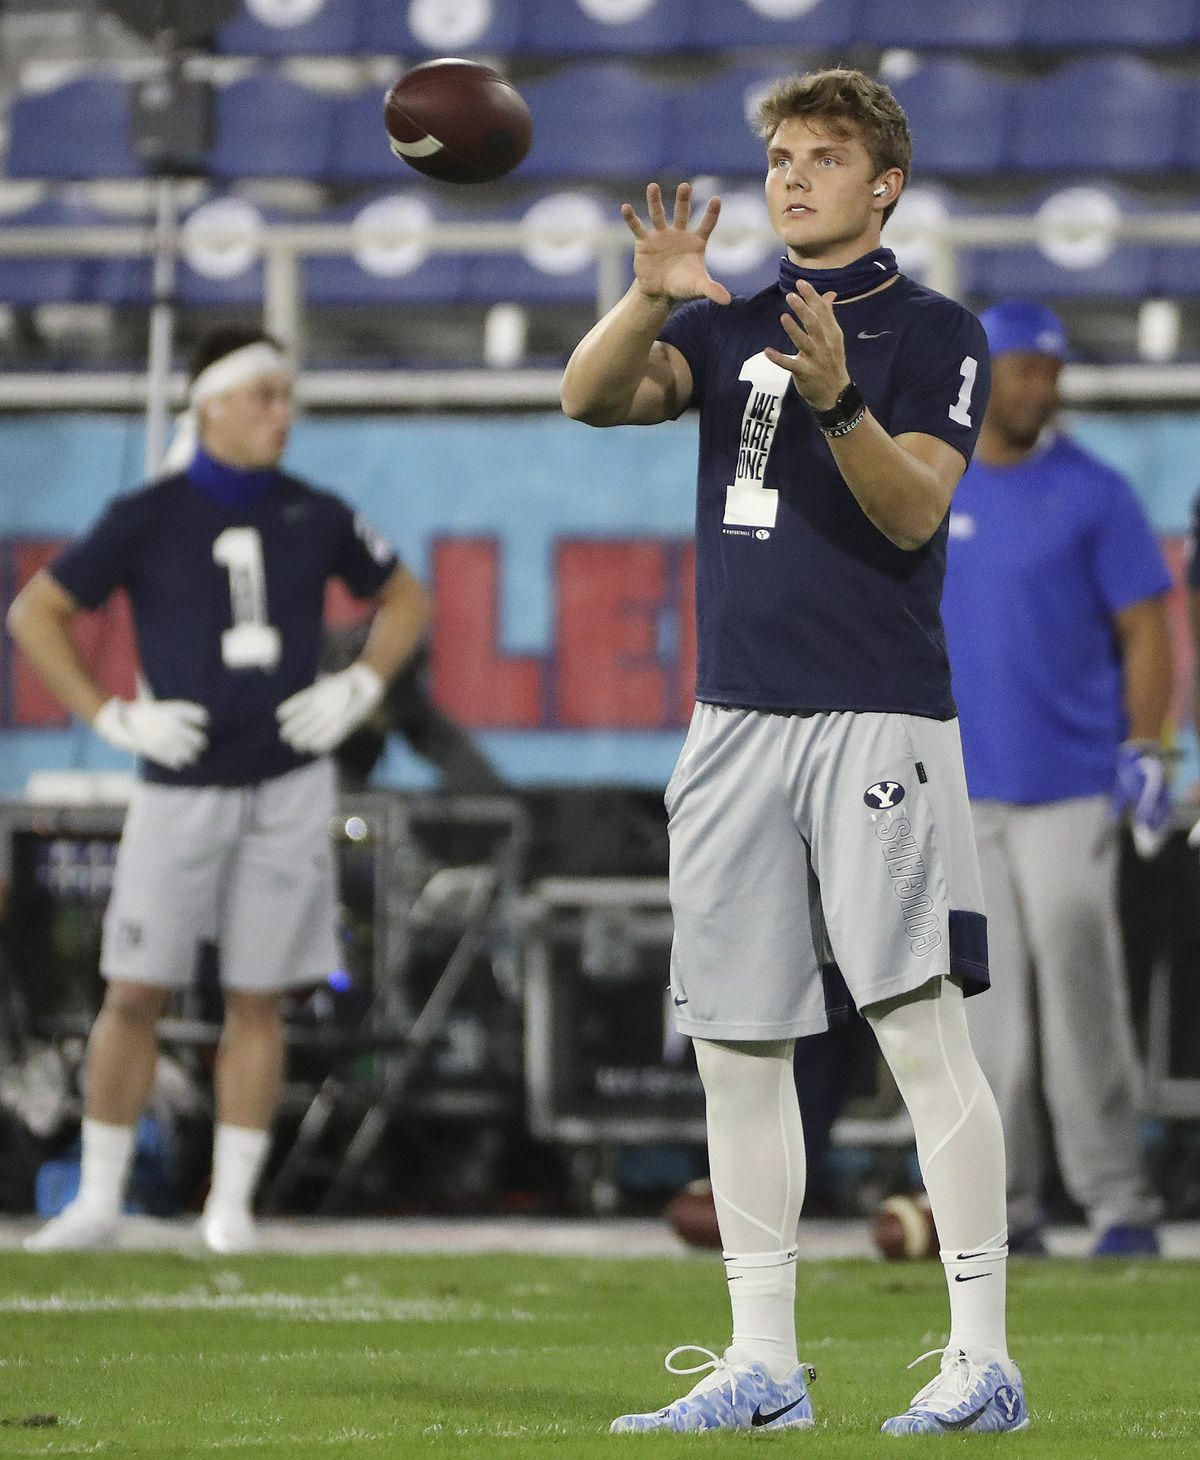 BYU Cougars quarterback Zach Wilson (1) warms up prior to the Boca Raton Bowl in Boca Raton, Fla., on Tuesday, Dec. 22, 2020.